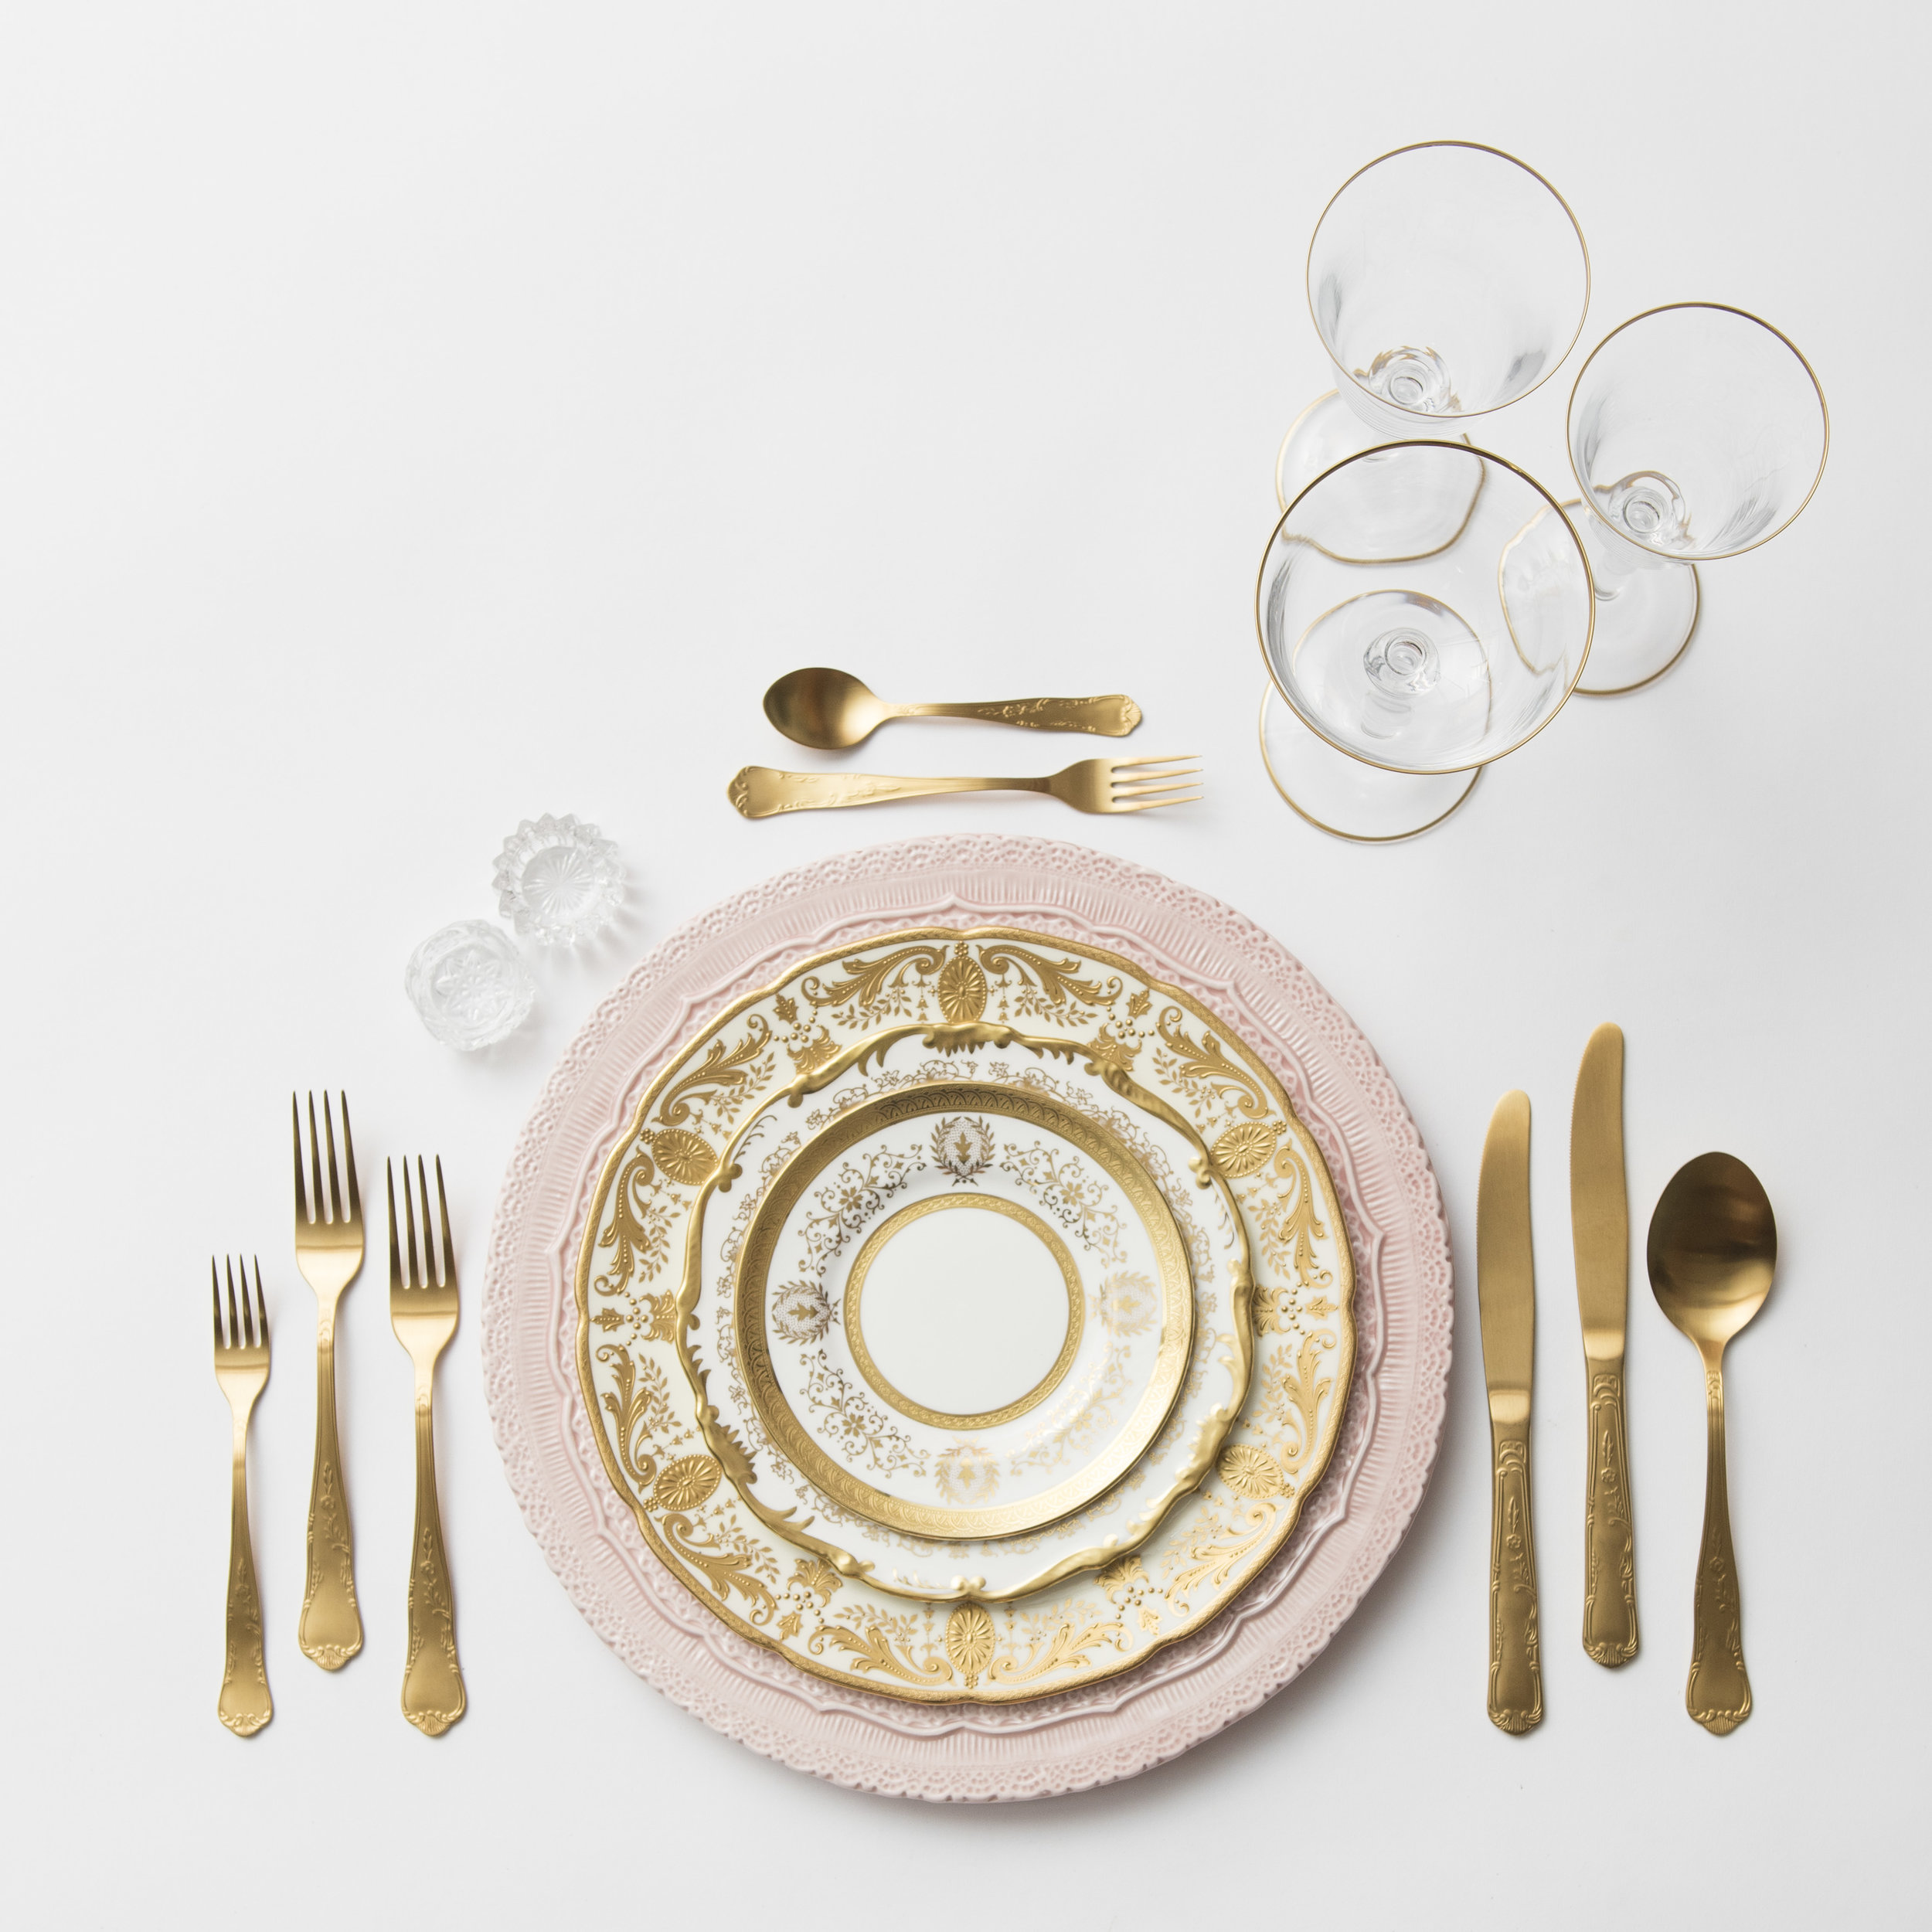 RENT: Lace Chargers in Blush + Crown Gold Collection Vintage China + Chateau Flatware in Matte Gold + Chloe 24k Gold Rimmed Stemware + Antique Crystal Salt Cellars  SHOP: Chloe 24k Gold Rimmed Stemware